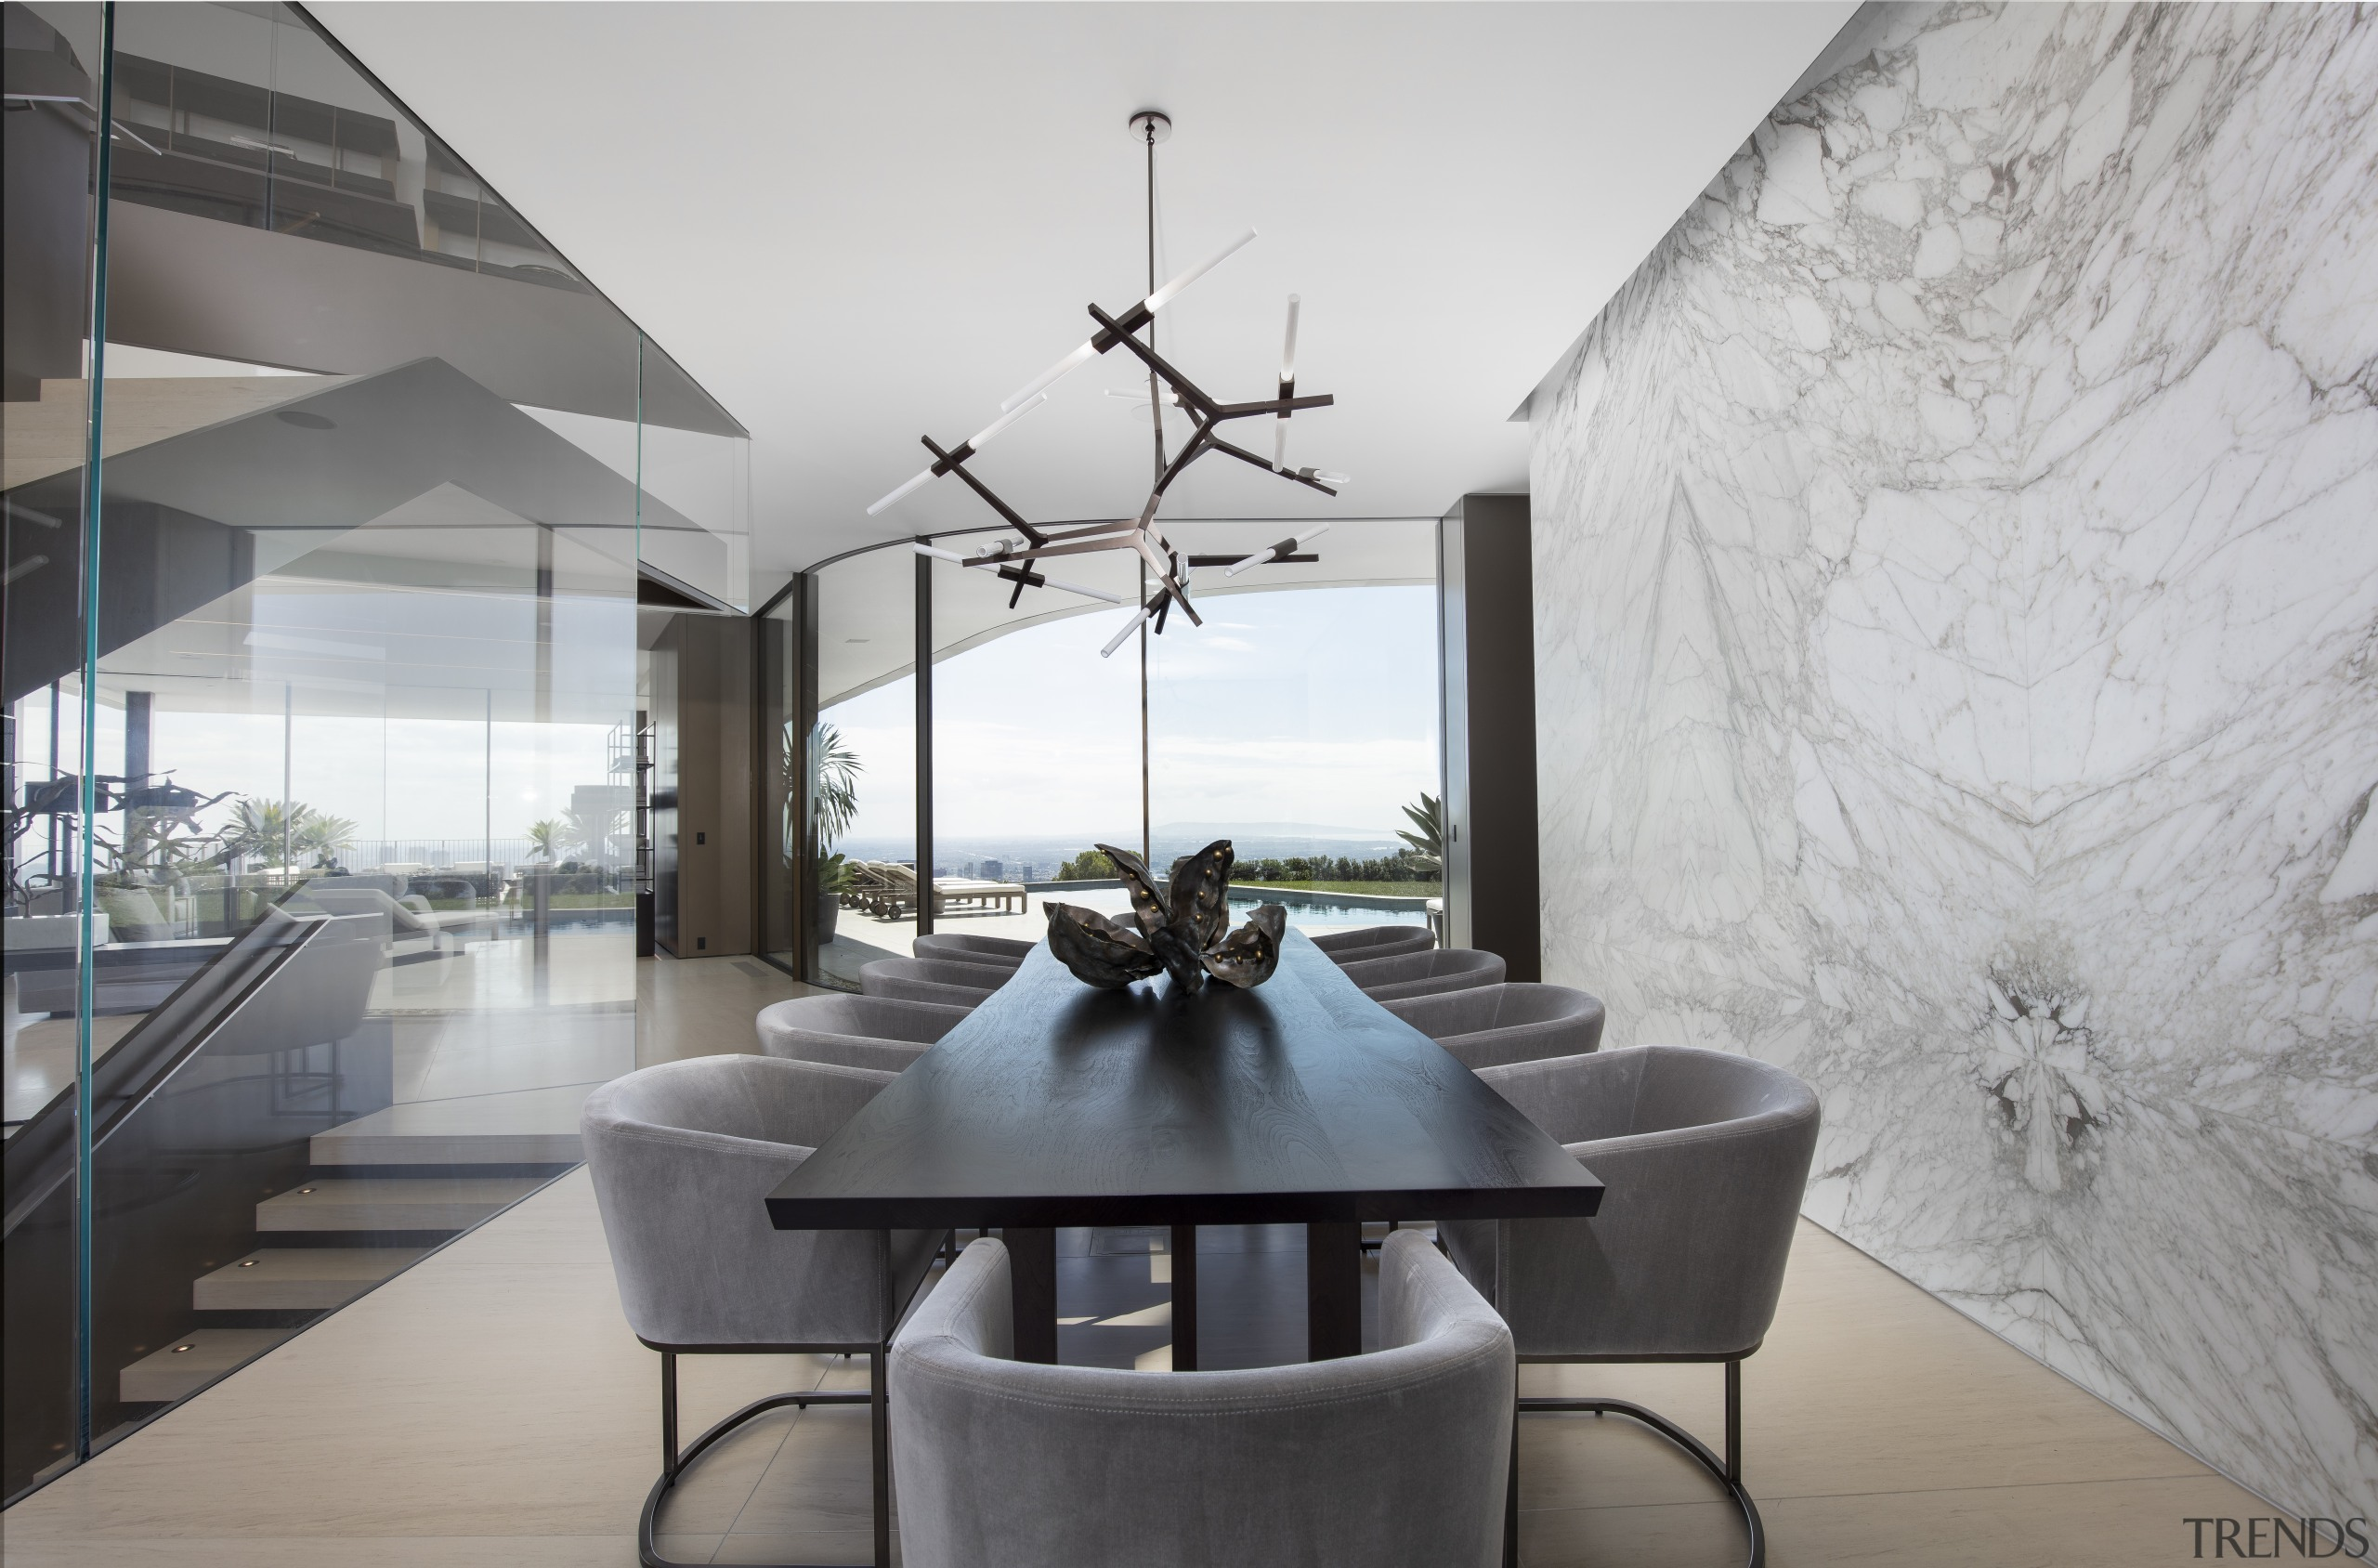 The dining space is at the centre of architecture, building, ceiling, coffee table, design, dining room, floor, furniture, home, house, interior design, living room, property, real estate, room, table, gray